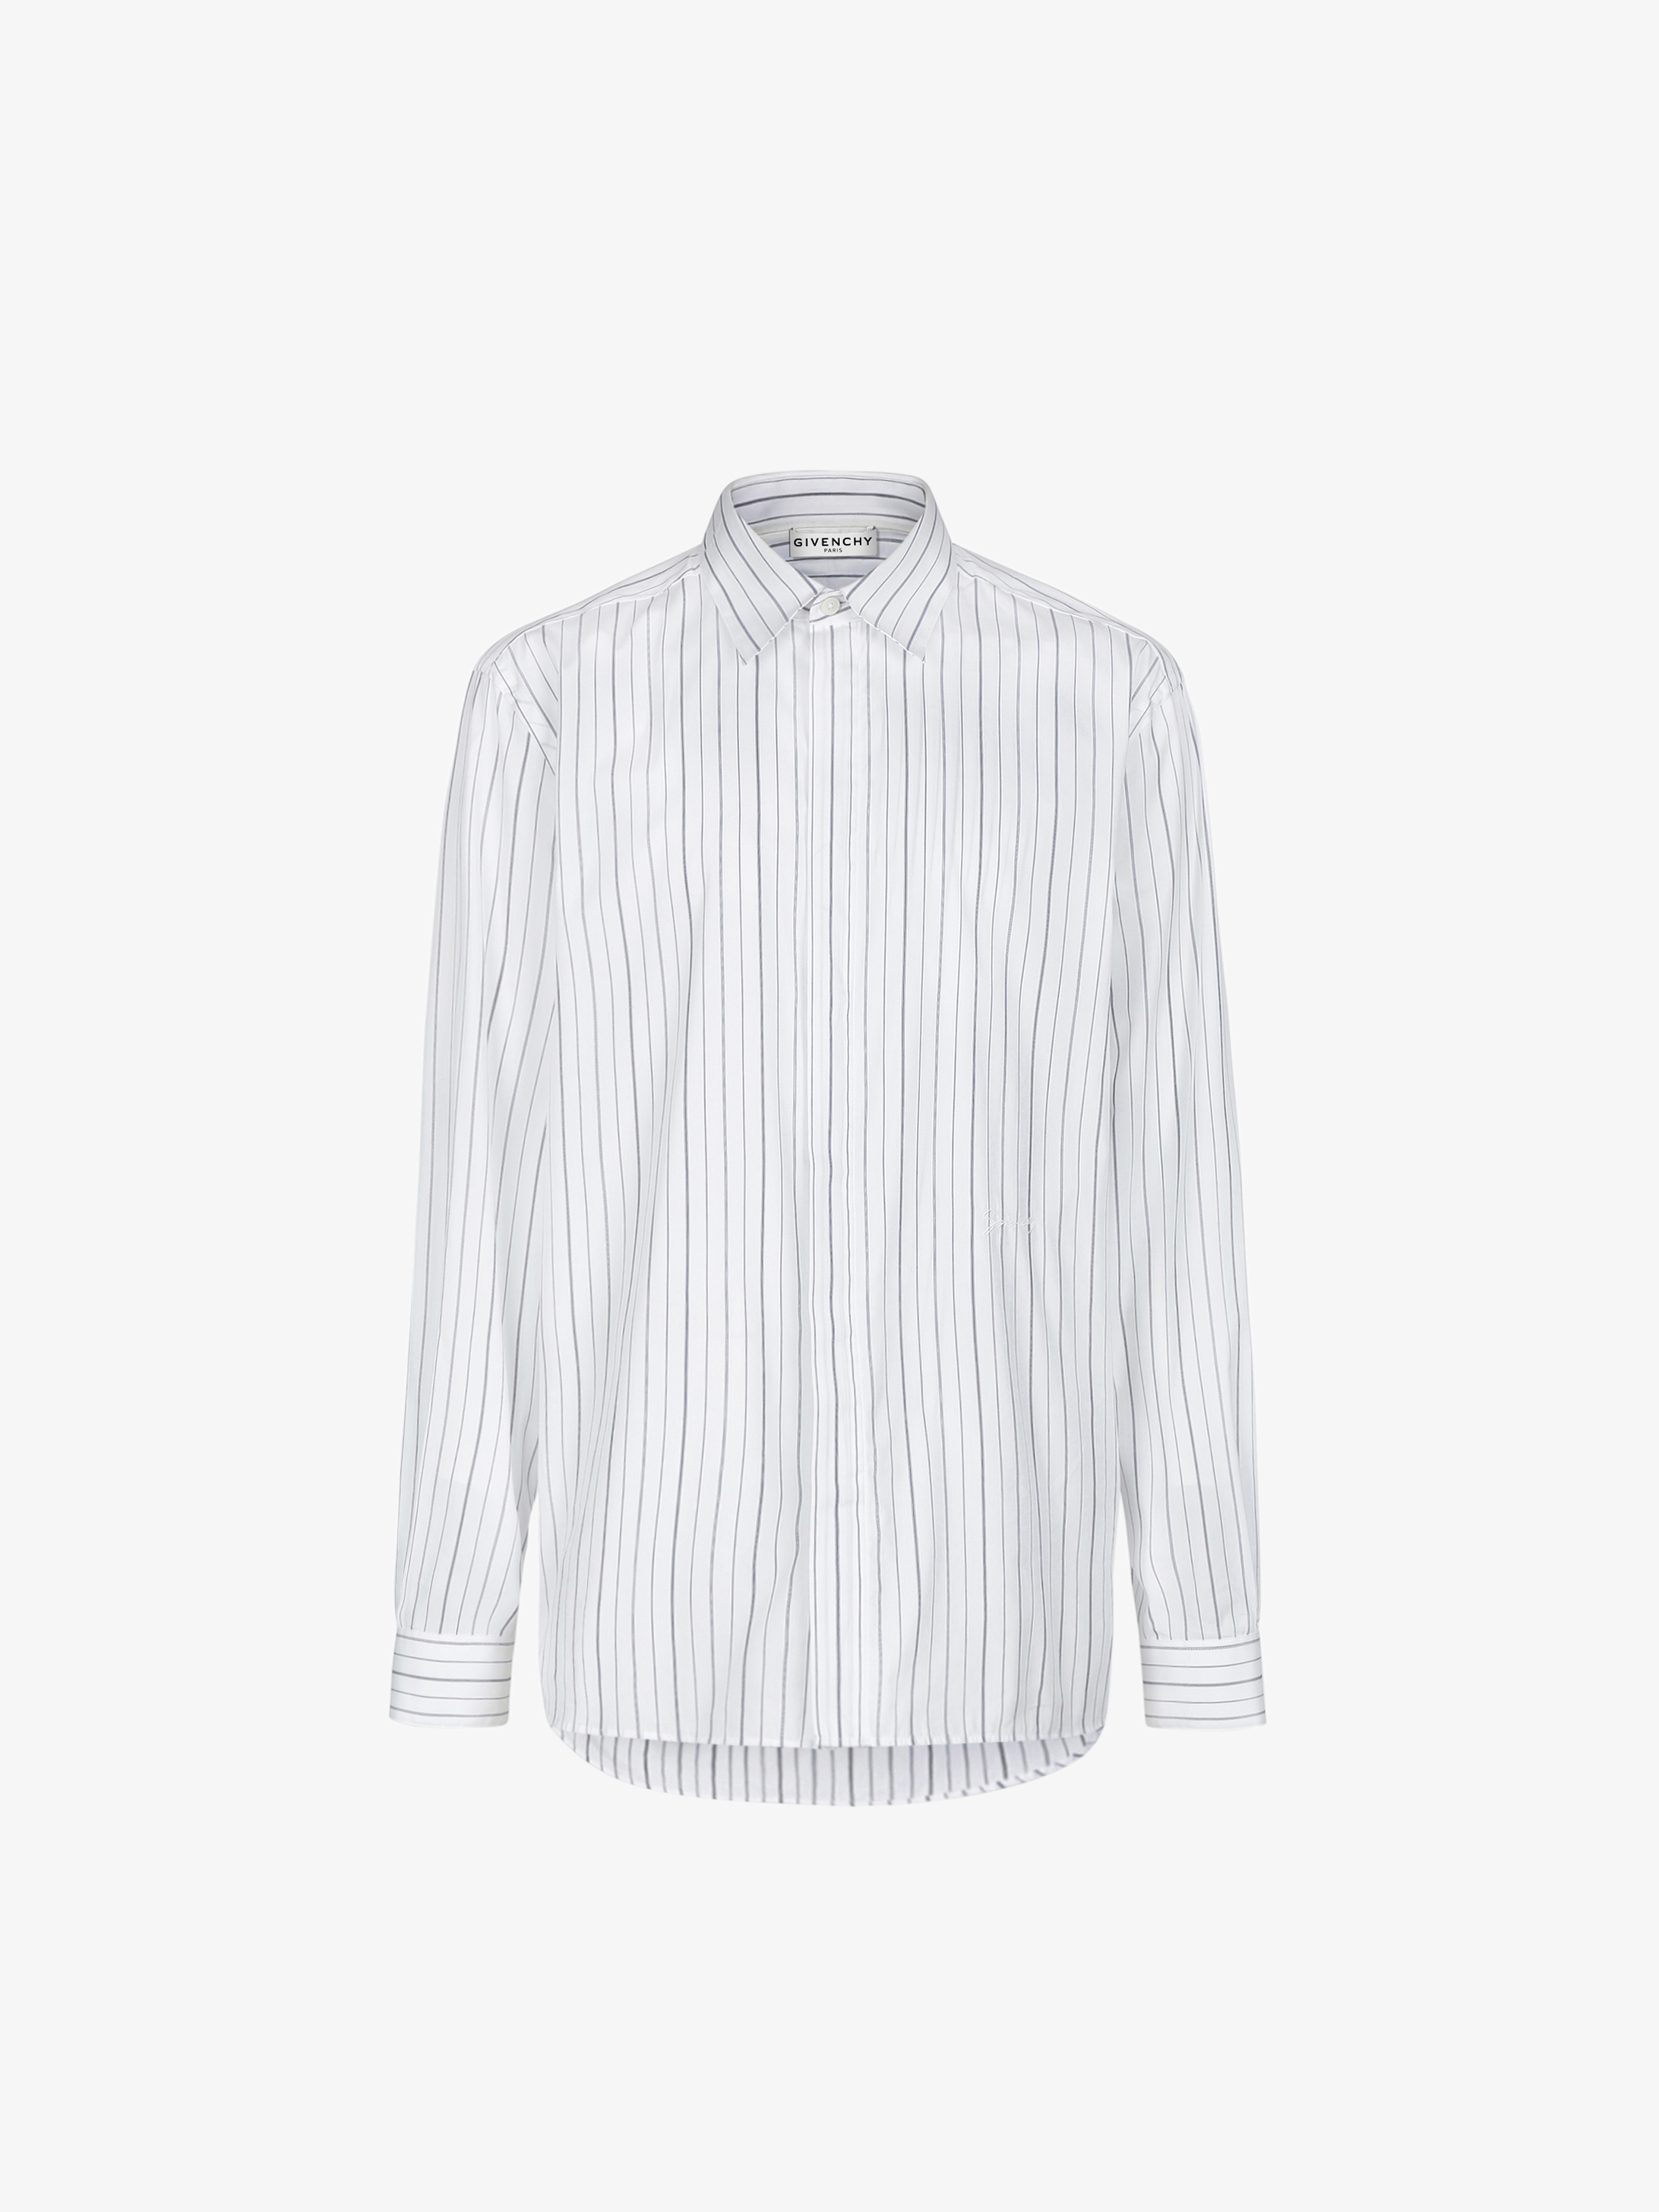 GIVENCHY signature embroidered striped shirt